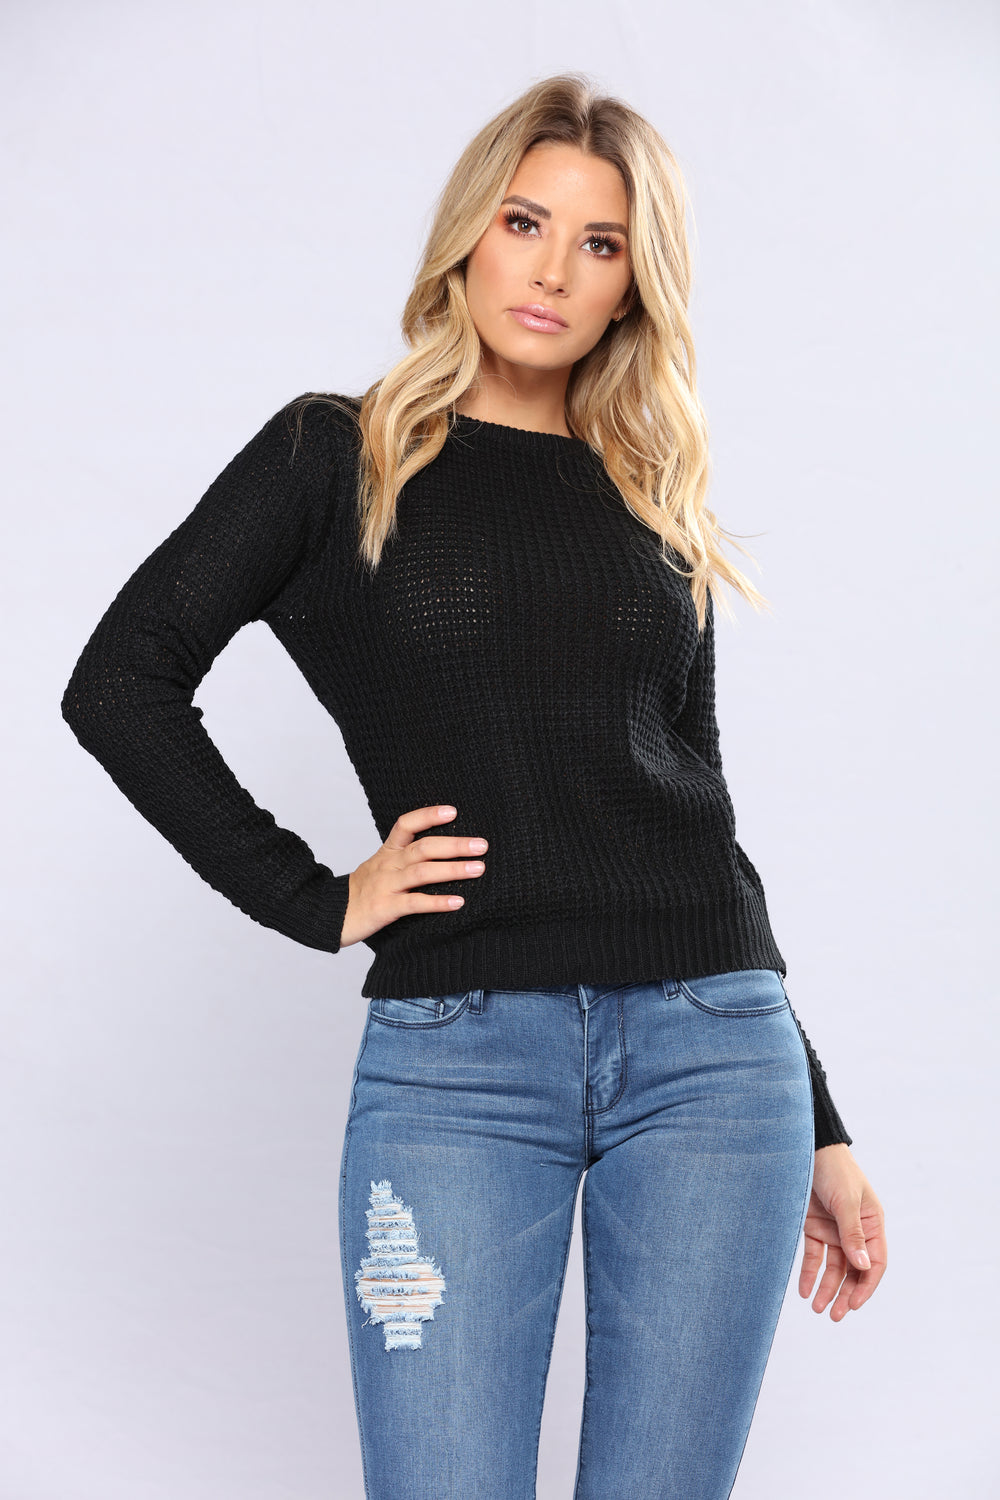 Solemate Caged Back Sweater - Black